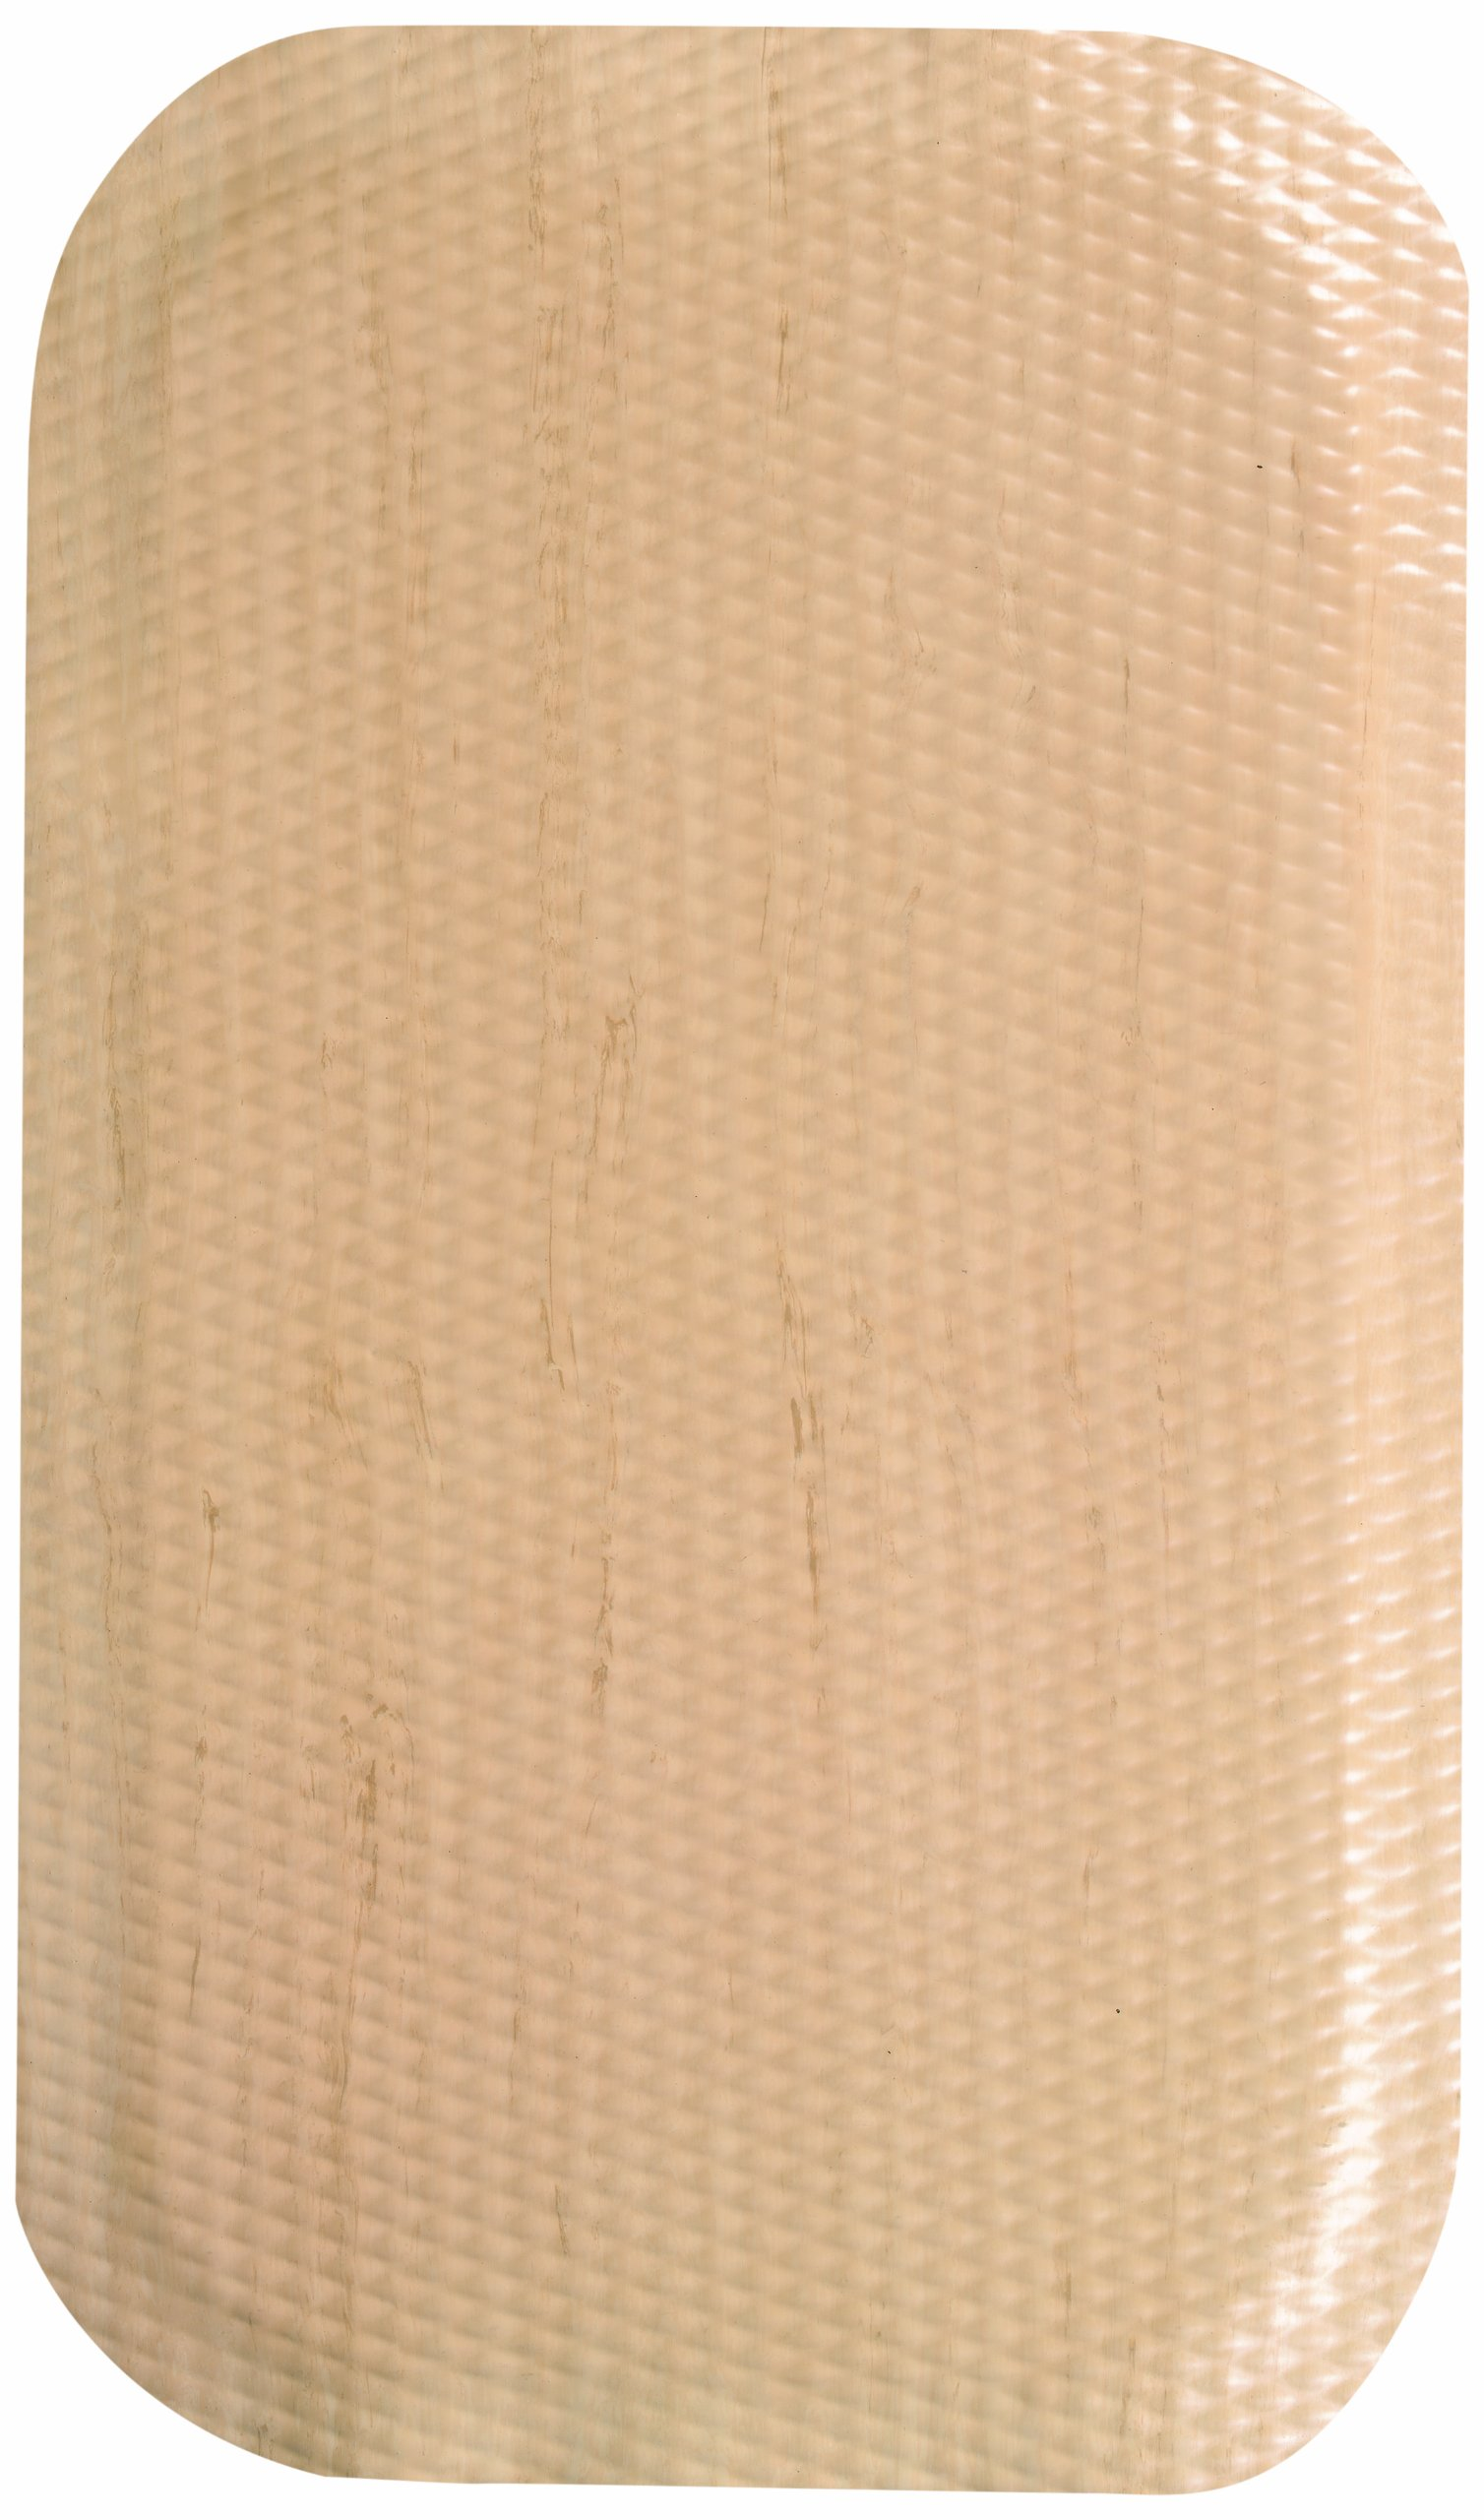 Andersen 449 Hog Heaven SBR/Nitrile Rubber Marble Top Anti-Fatigue Floor Mat, Nitrile/PVC Rubber Cushion Backing, 6' Length x 4' Width, 7/8'' Thick, Amber Maple